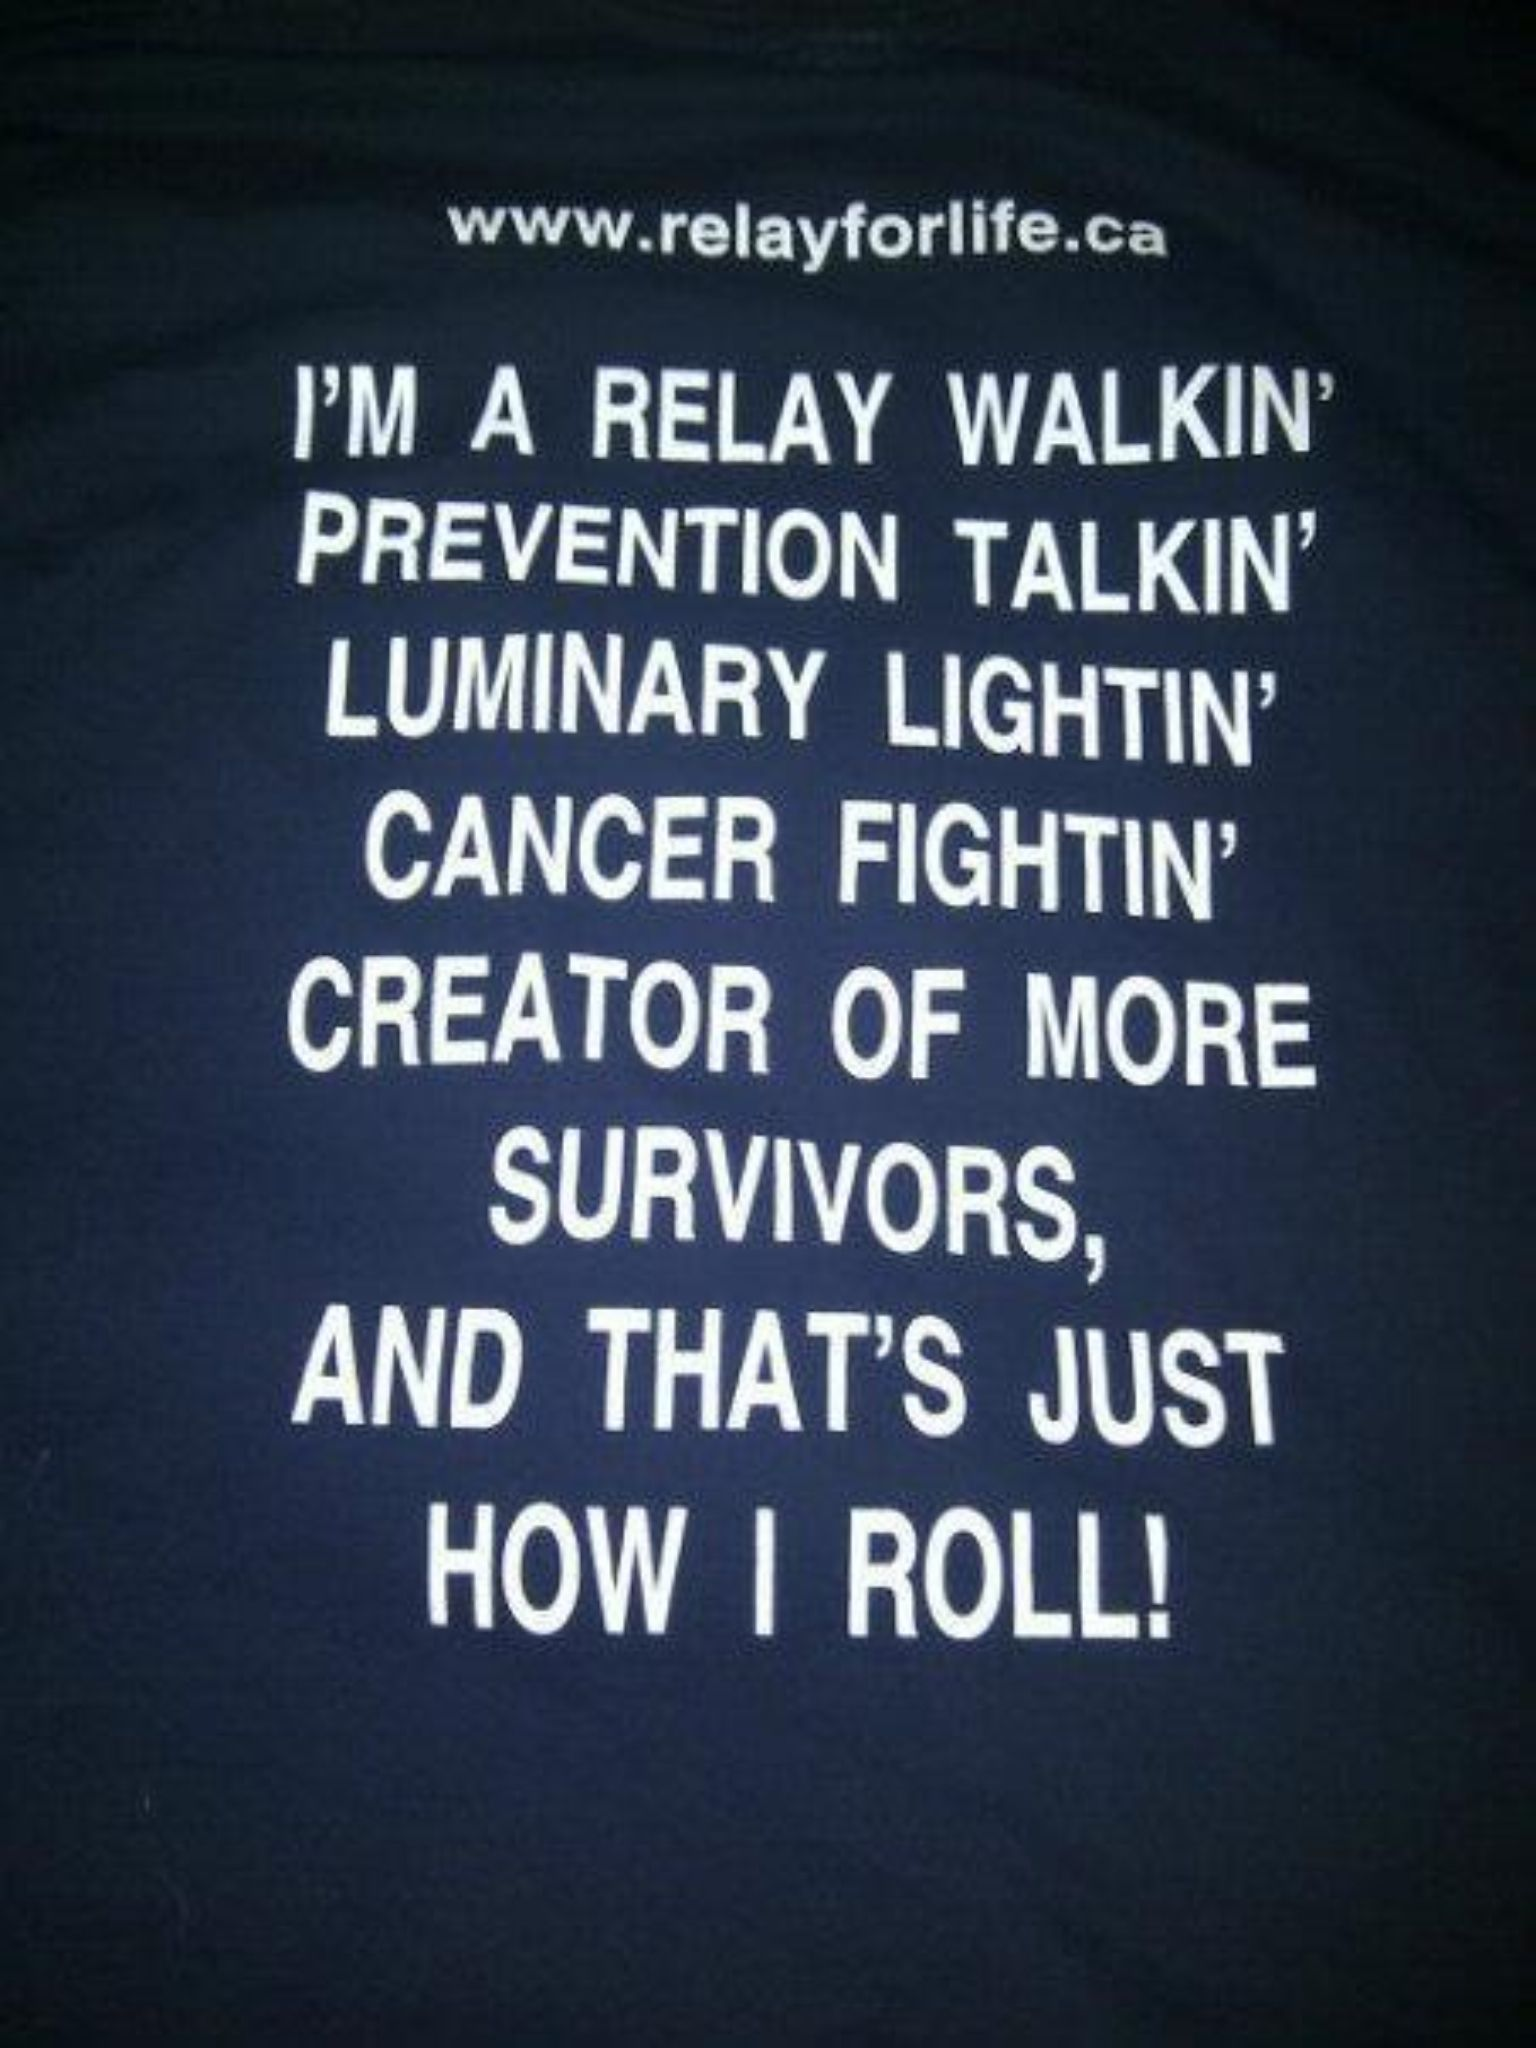 Relay For Life Quotes Inspirationi'm A Relay Walkin' Prevention Talkin' Luminary